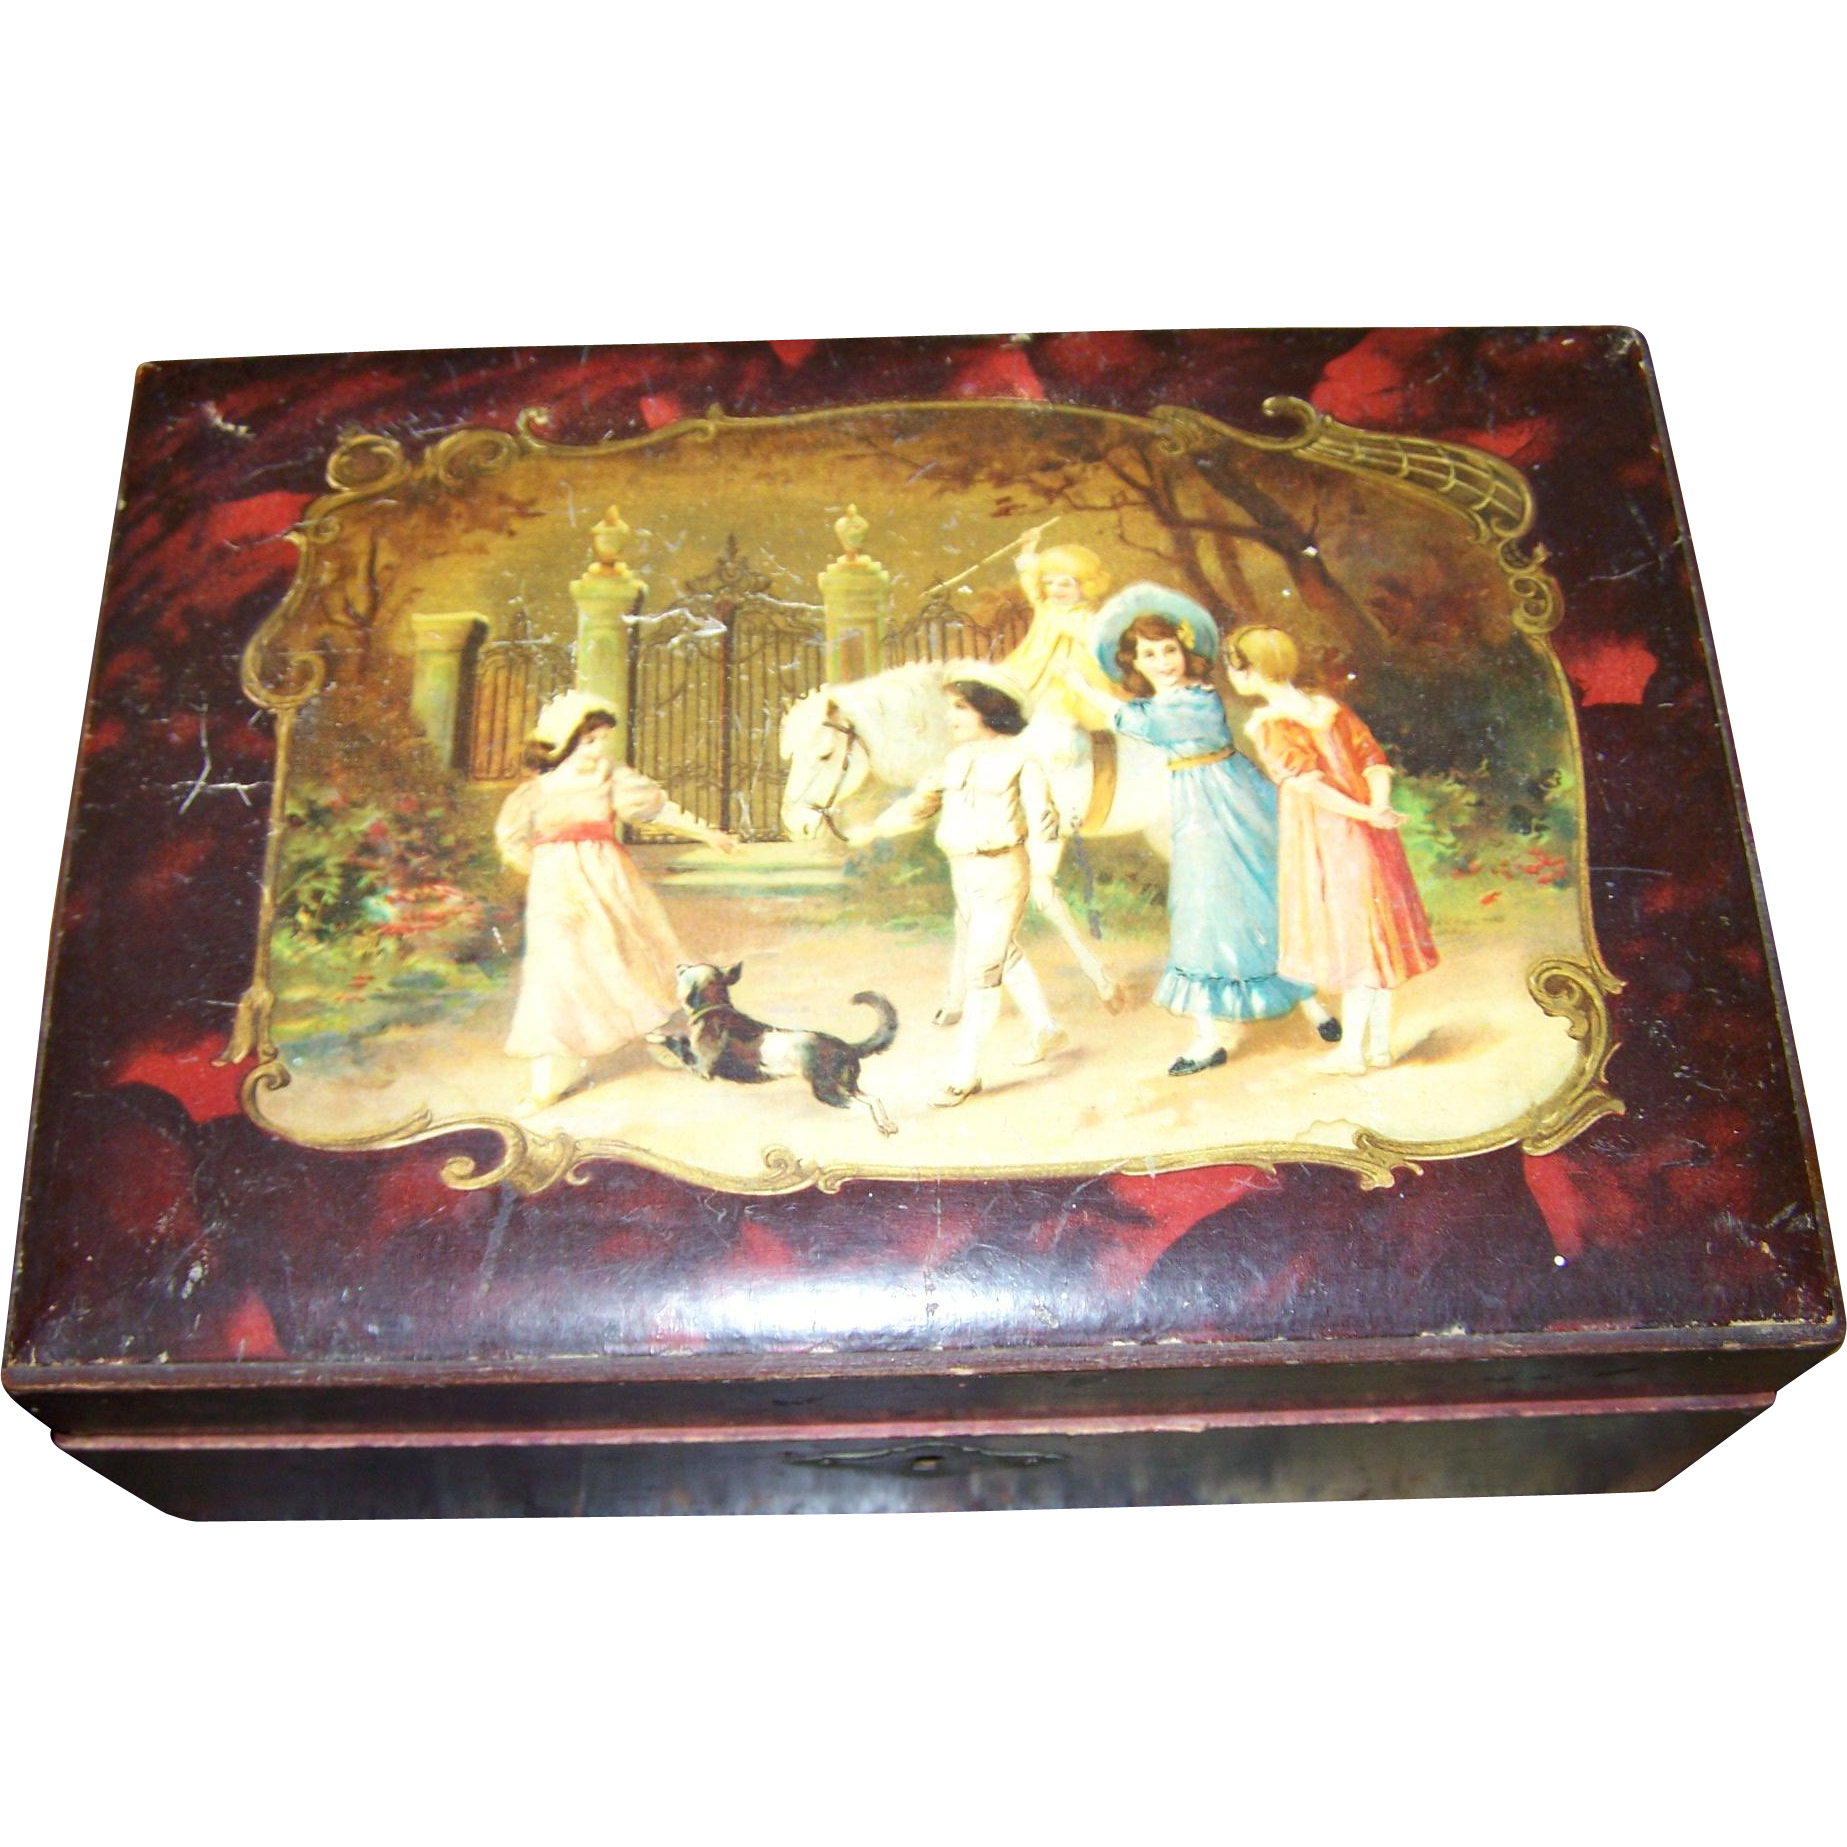 Wood Vanity Dresser Box Faux Celluloid Style Tortoiseshell with Scene For Repair